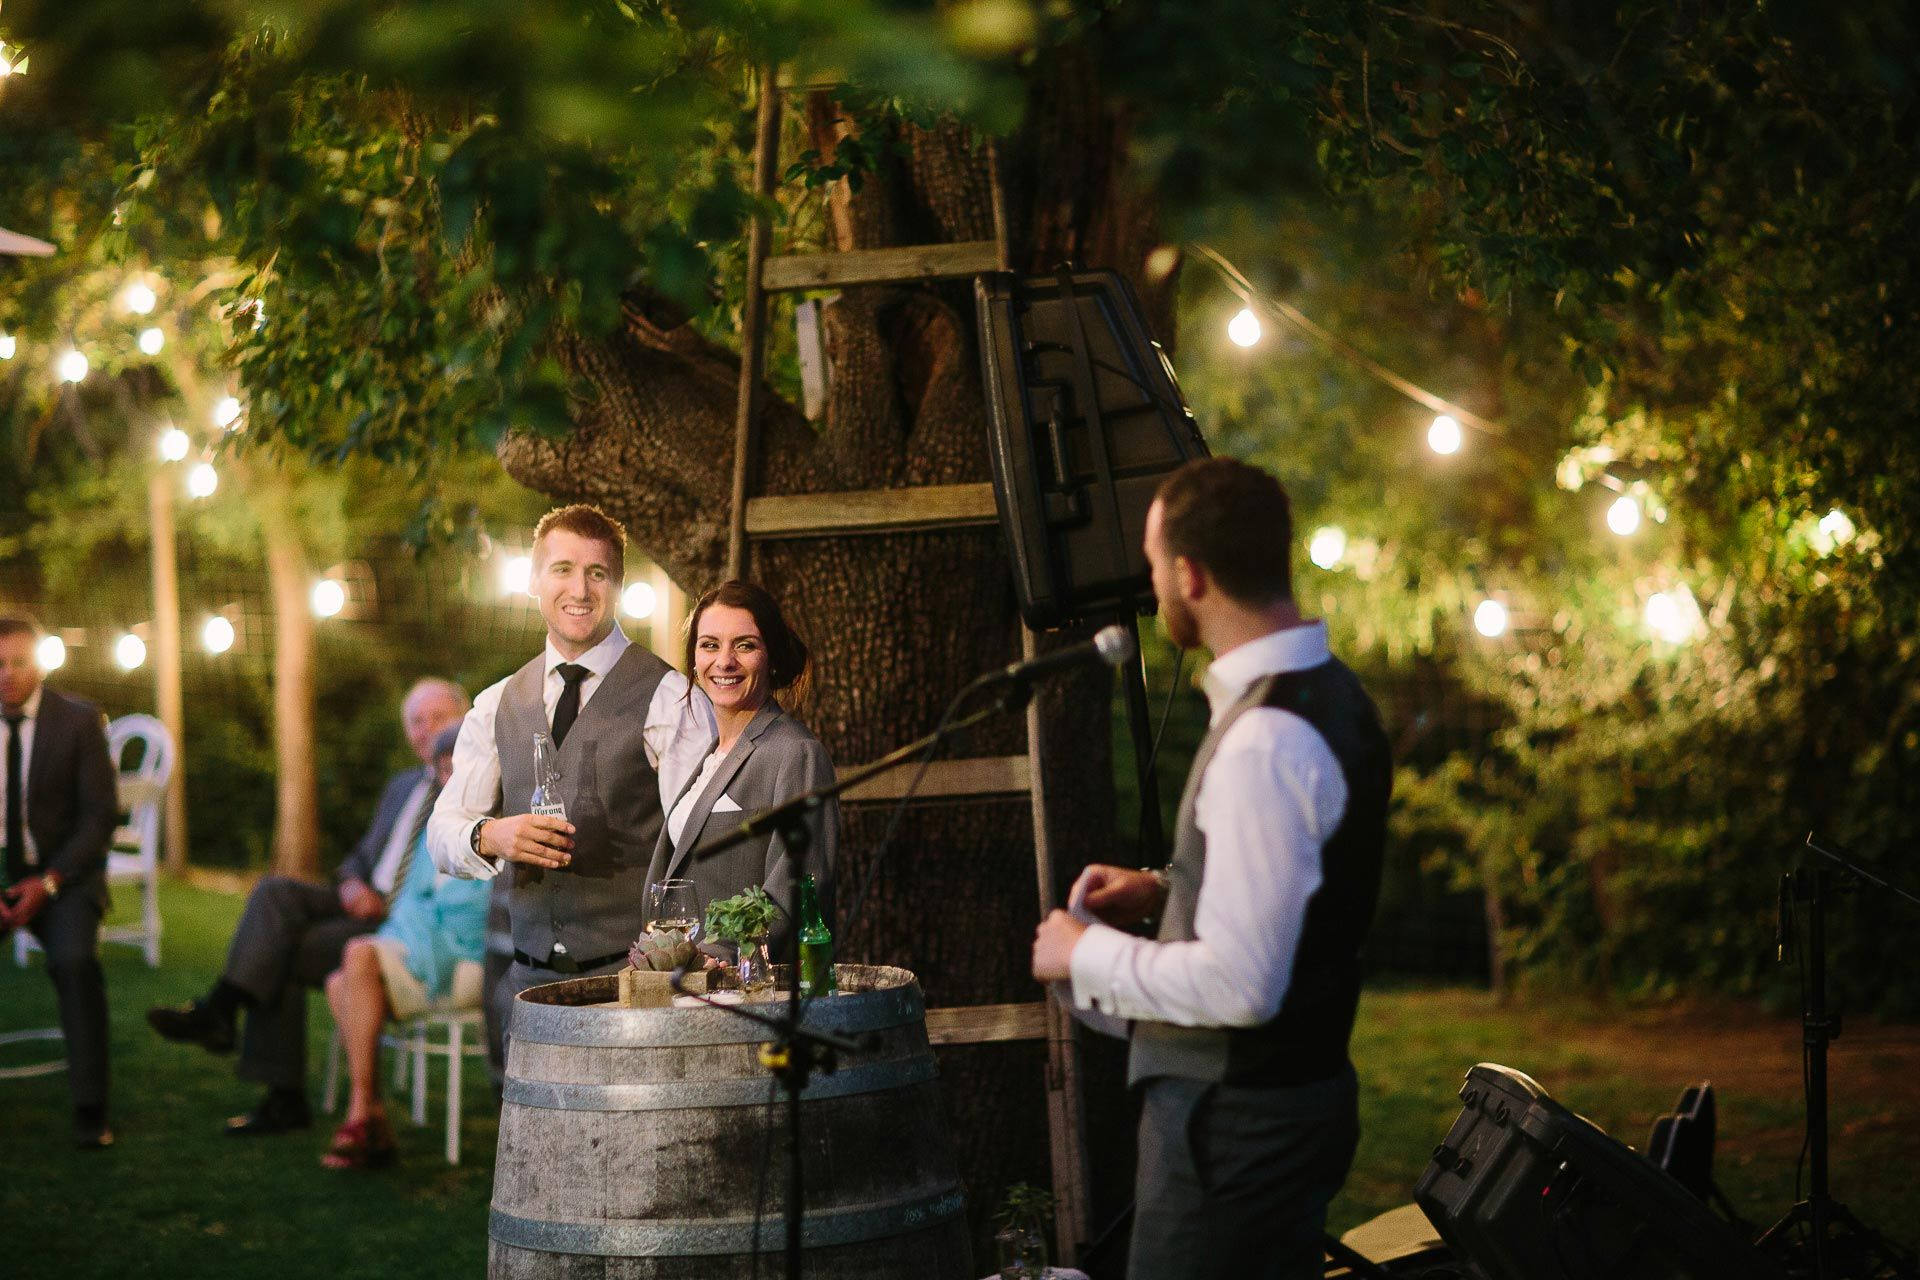 The White House In Adelaide Hills Little German Town Of Hahndorf Is A Quaint And Rustic Wedding Venue We Love